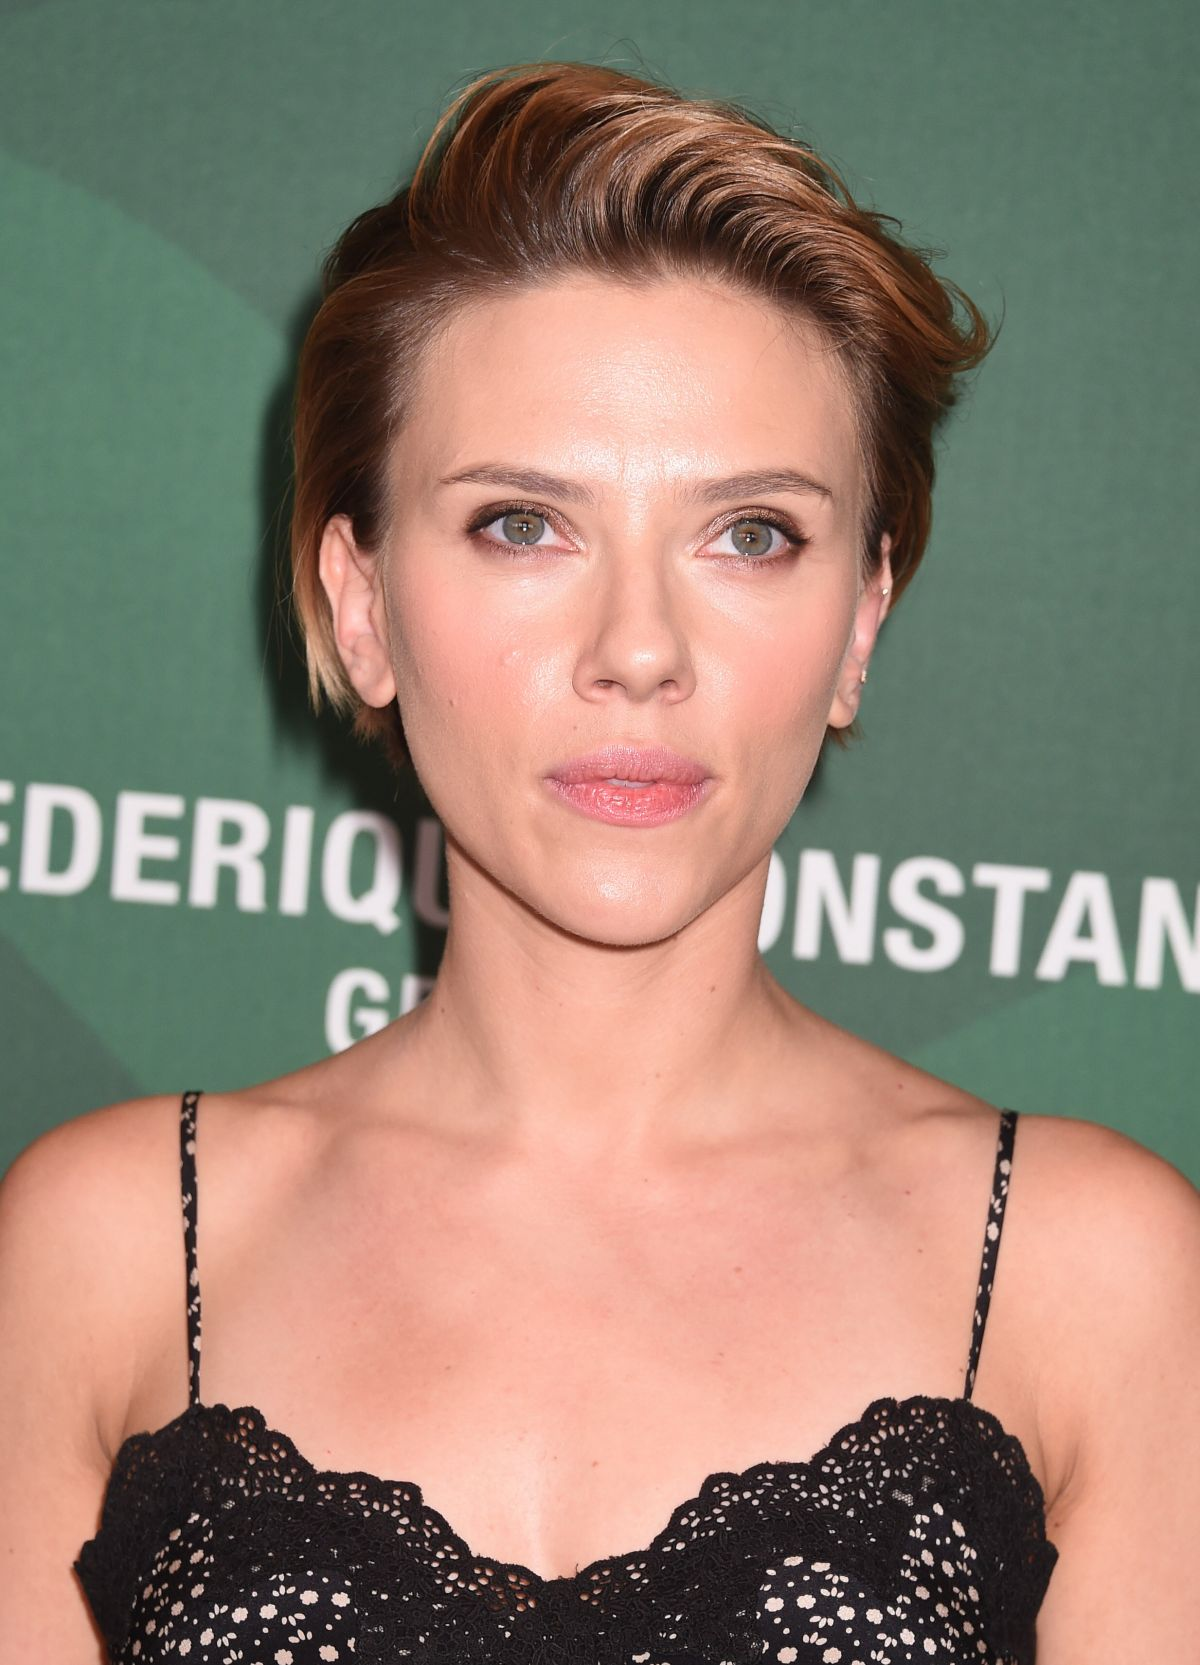 SCARLETT JOHANSSON at Variety's Power of Women Event in Los Angeles 10/14/2016